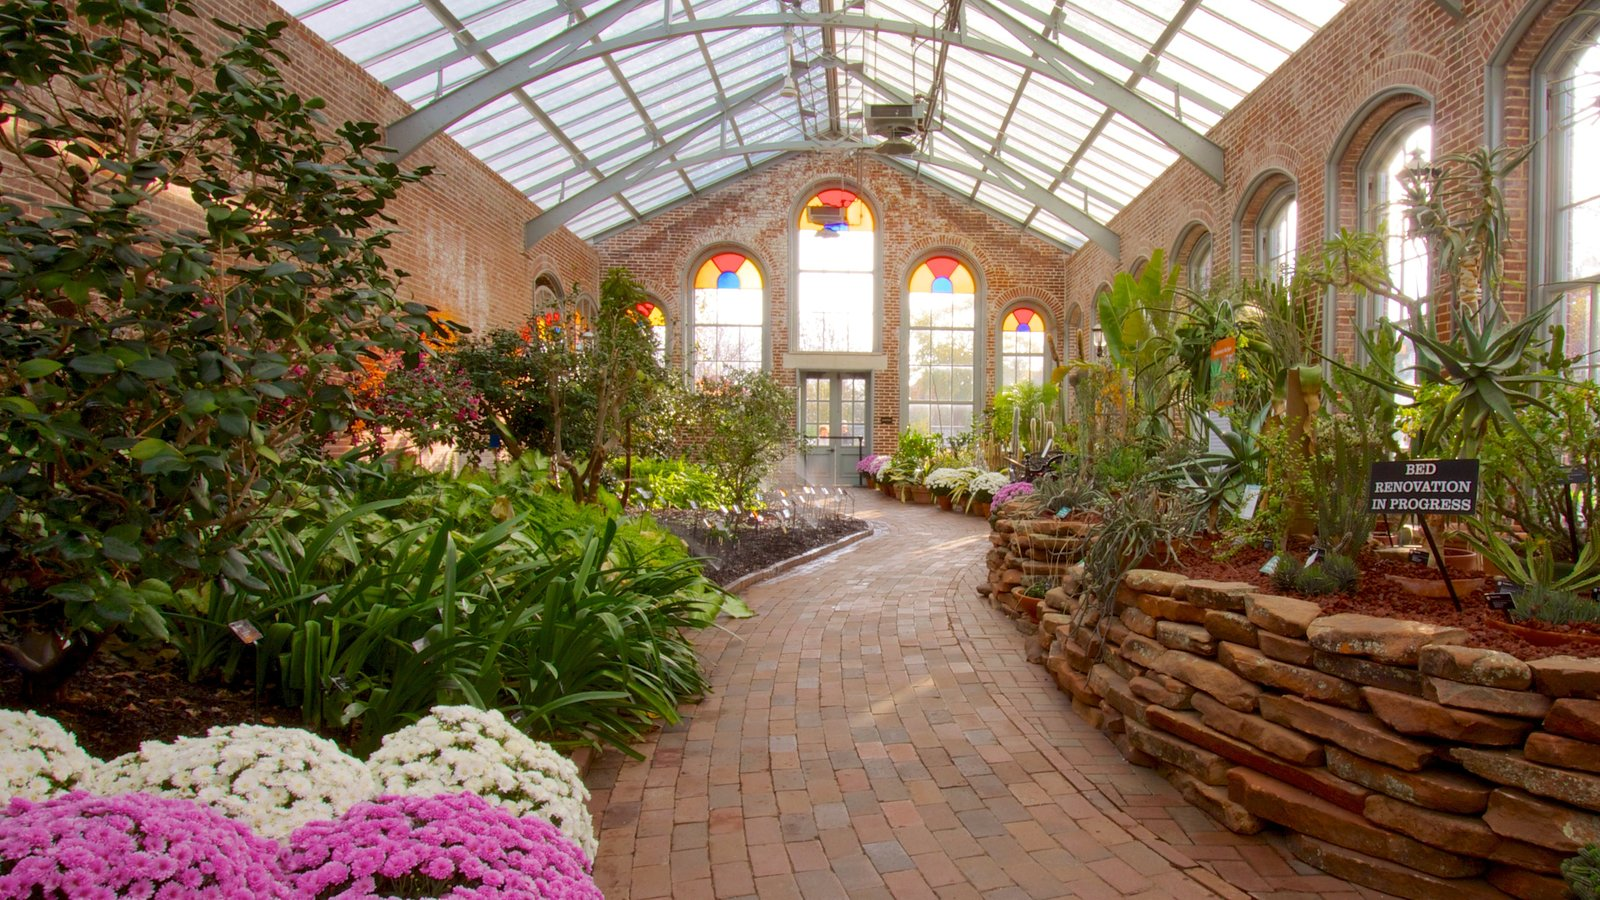 Missouri Botanical Gardens and Arboretum which includes interior views, a garden and flowers